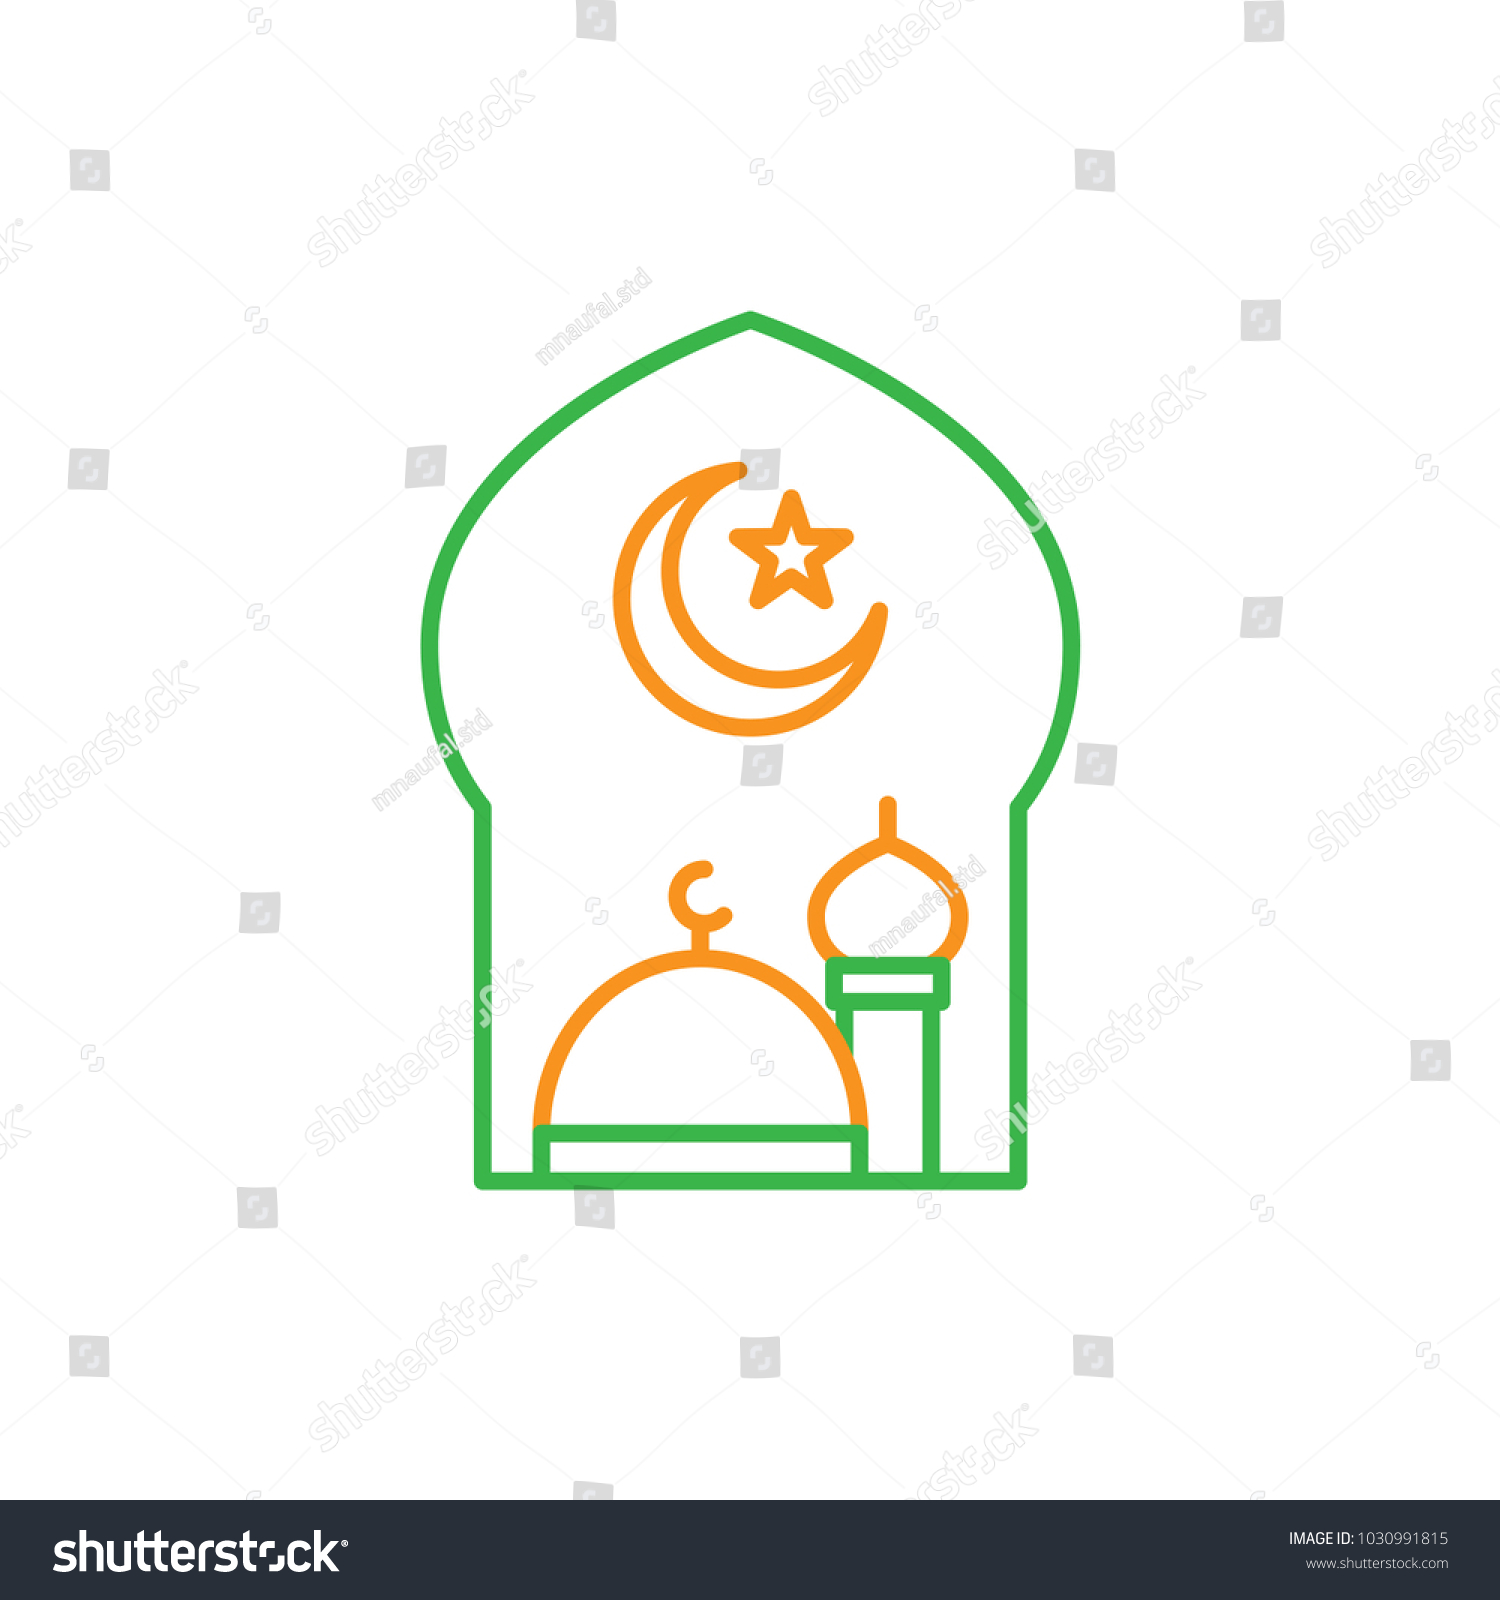 Muslim symbol moon and star gallery symbol and sign ideas great mosque crescent moon star islam stock vector 1030991815 great mosque with crescent moon and star buycottarizona Gallery